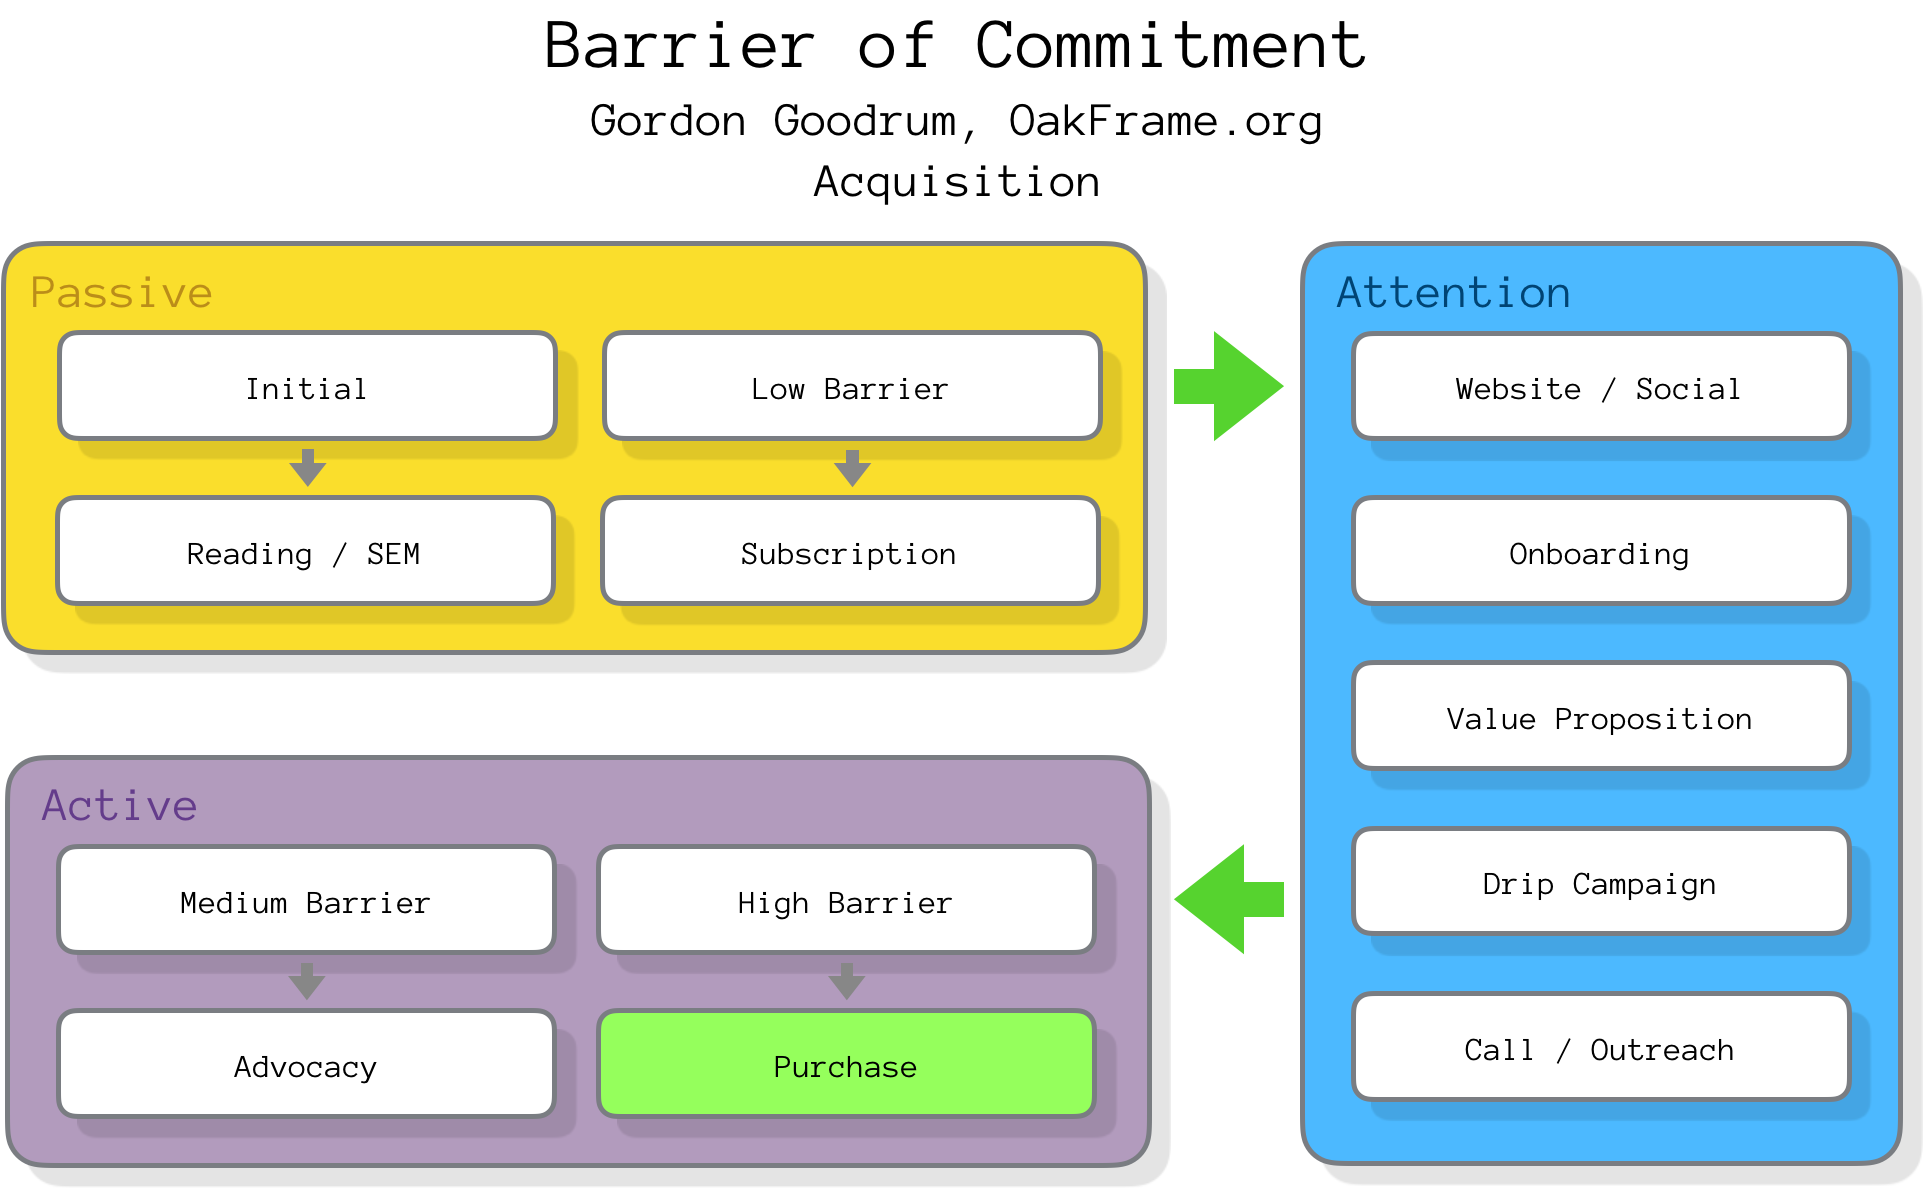 Gordon Goodrum's customer barrier of commitment diagram